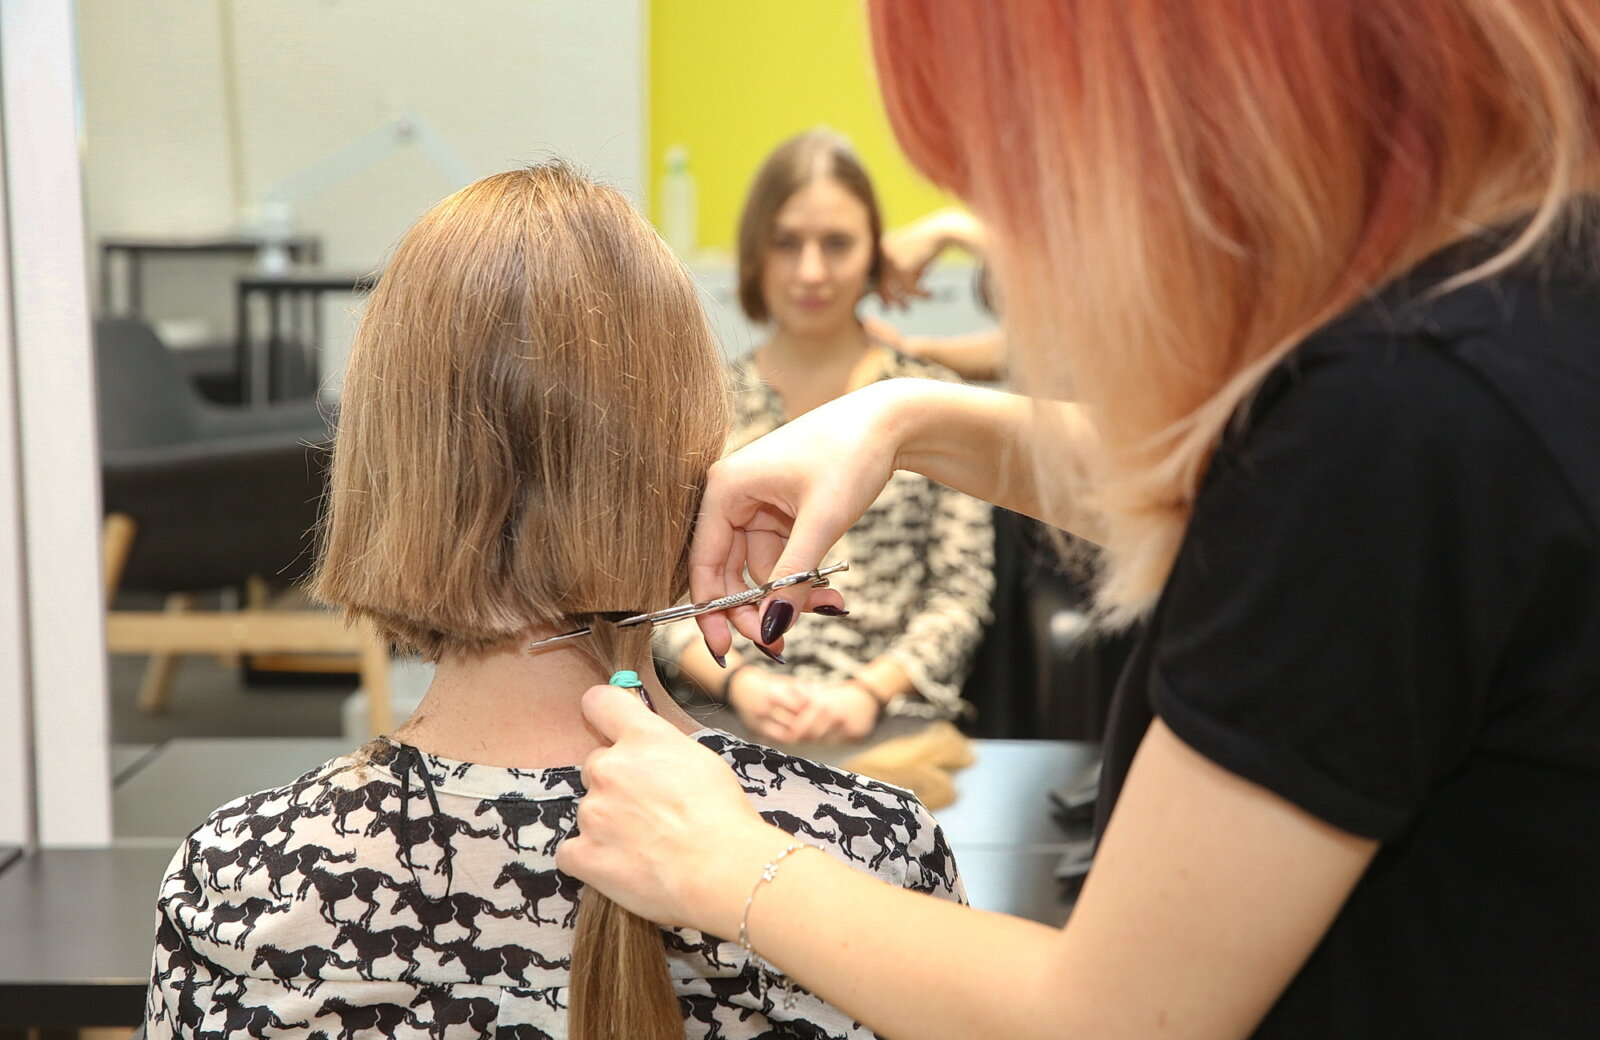 hair for share urges people to cut hair, makes wigs for